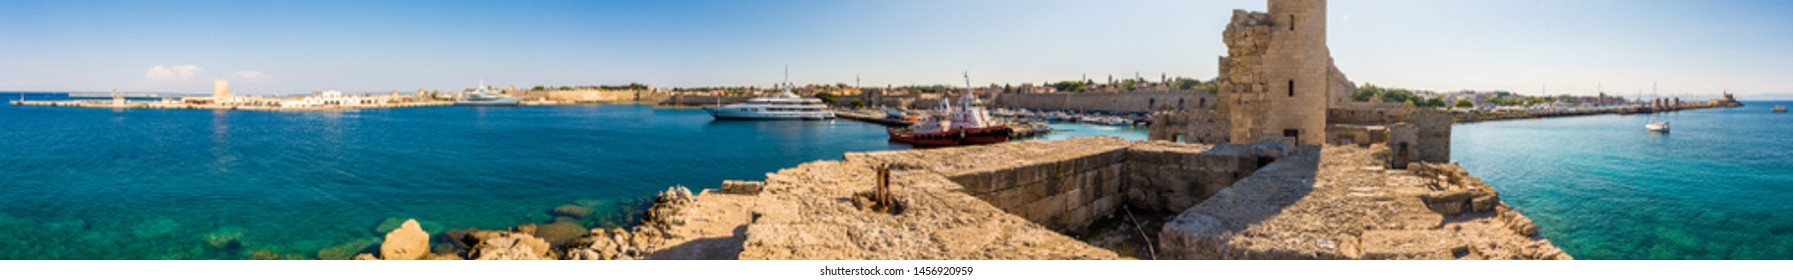 Rhodes, Greece - June 02, 2018. Pnoramic view of Rhodes port from Naillac tower